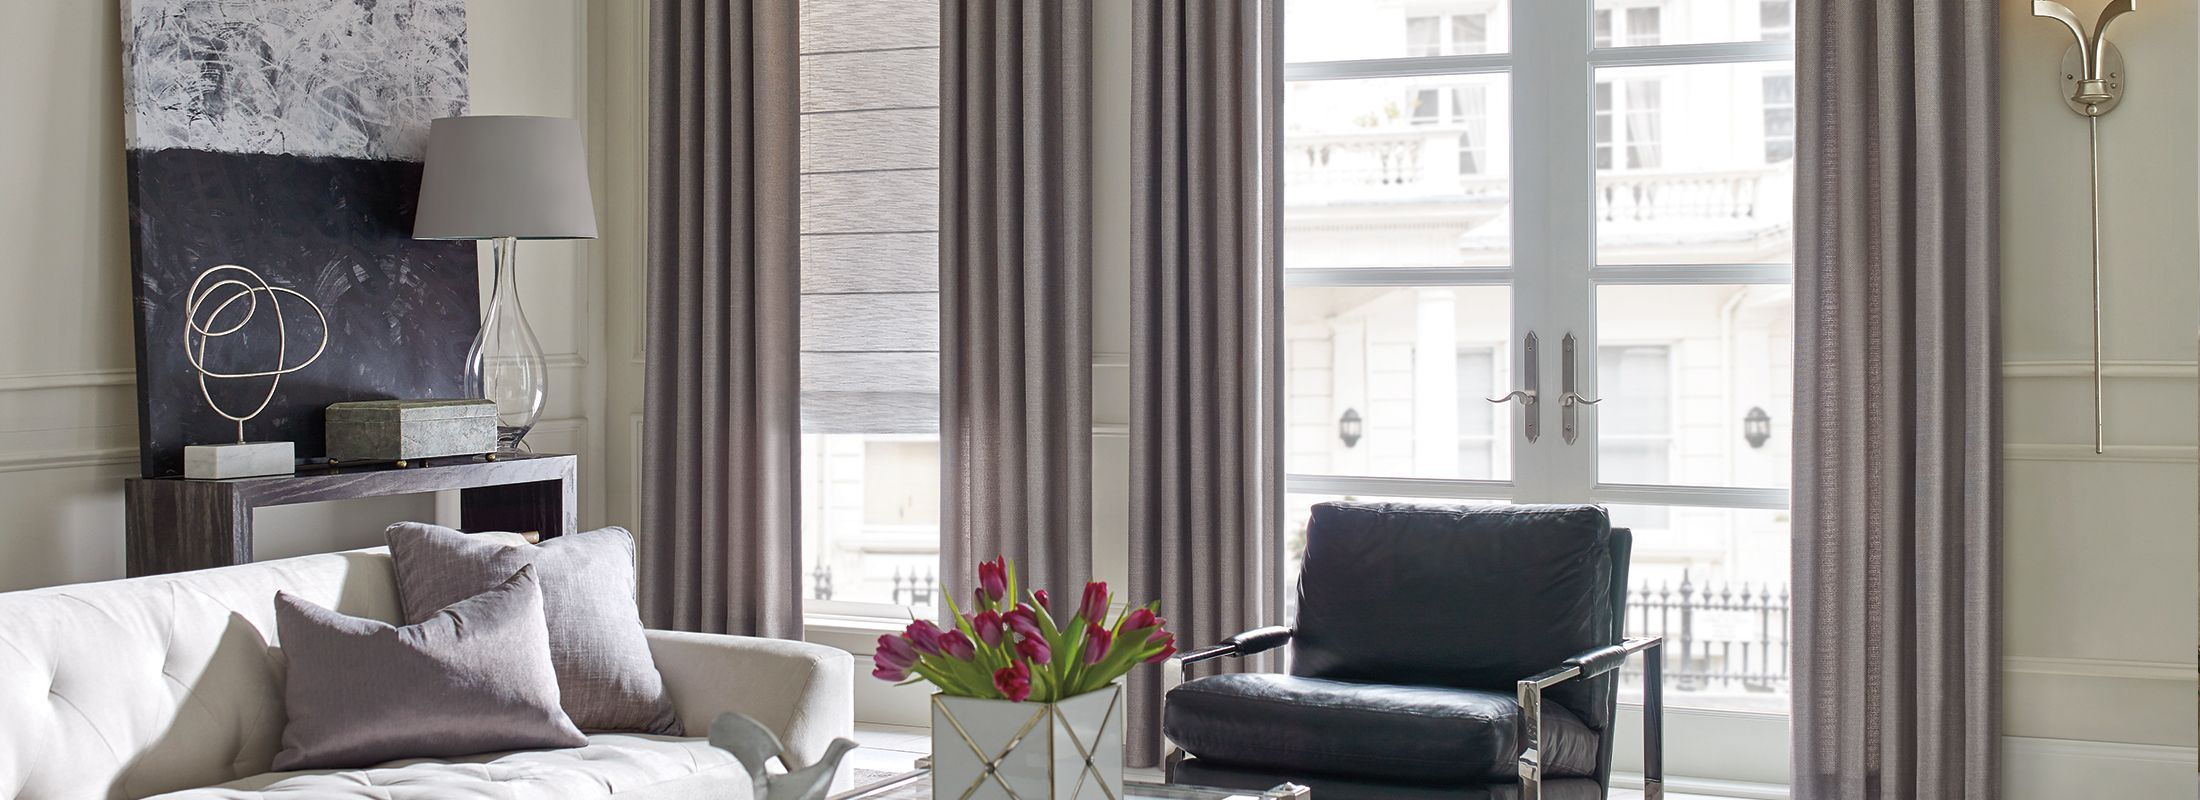 7 Interesting Facts About Blinds and Curtains